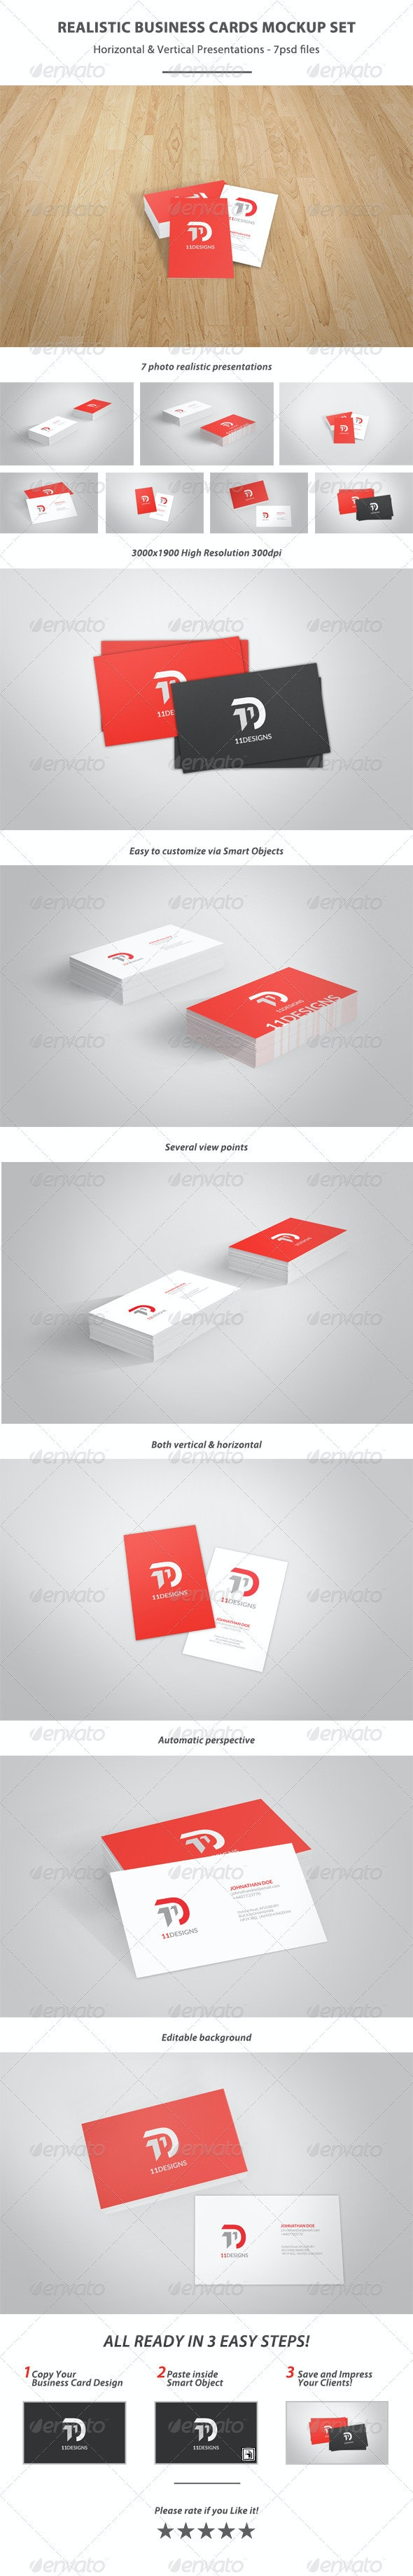 Realistic Business Card MockUp Set - Business Cards Print